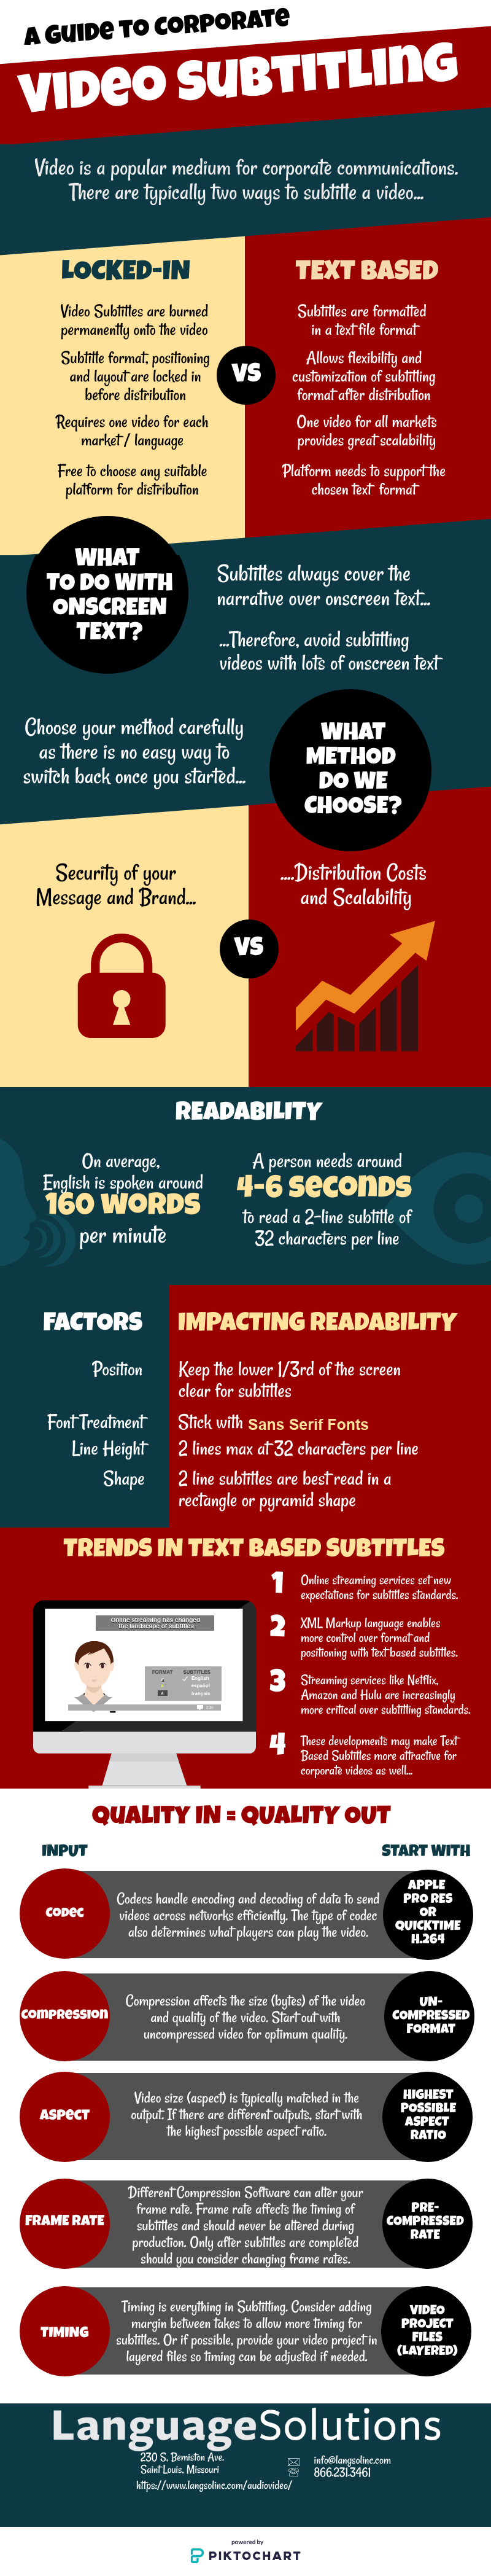 Video Subtitling in foreign languages infographic